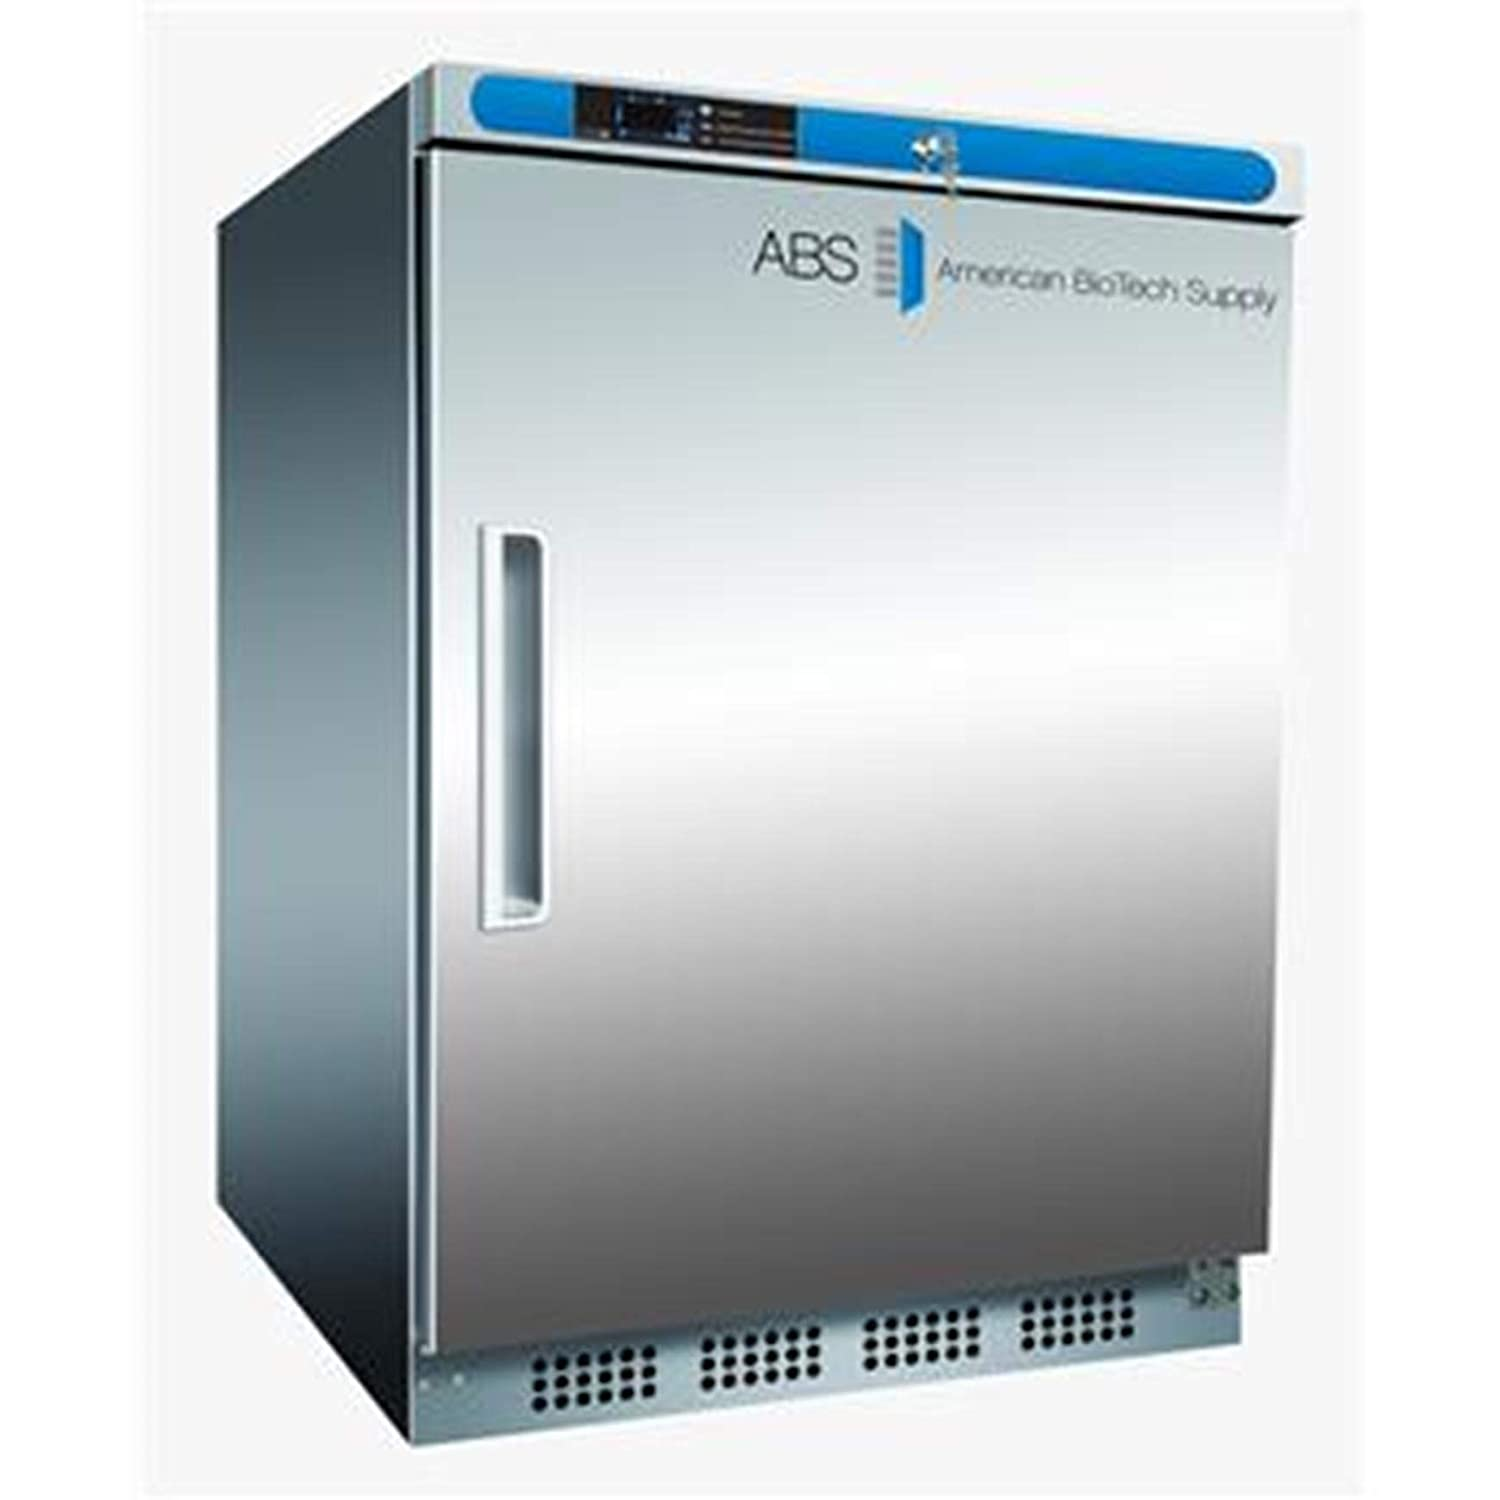 American BioTech Supply ABT-HC-UCBI-0420A-LH Premier Undercounter Freezer, AUTO DEFROST, Left Hinged, Built-In, 4.2 cu. ft. Capacity, White